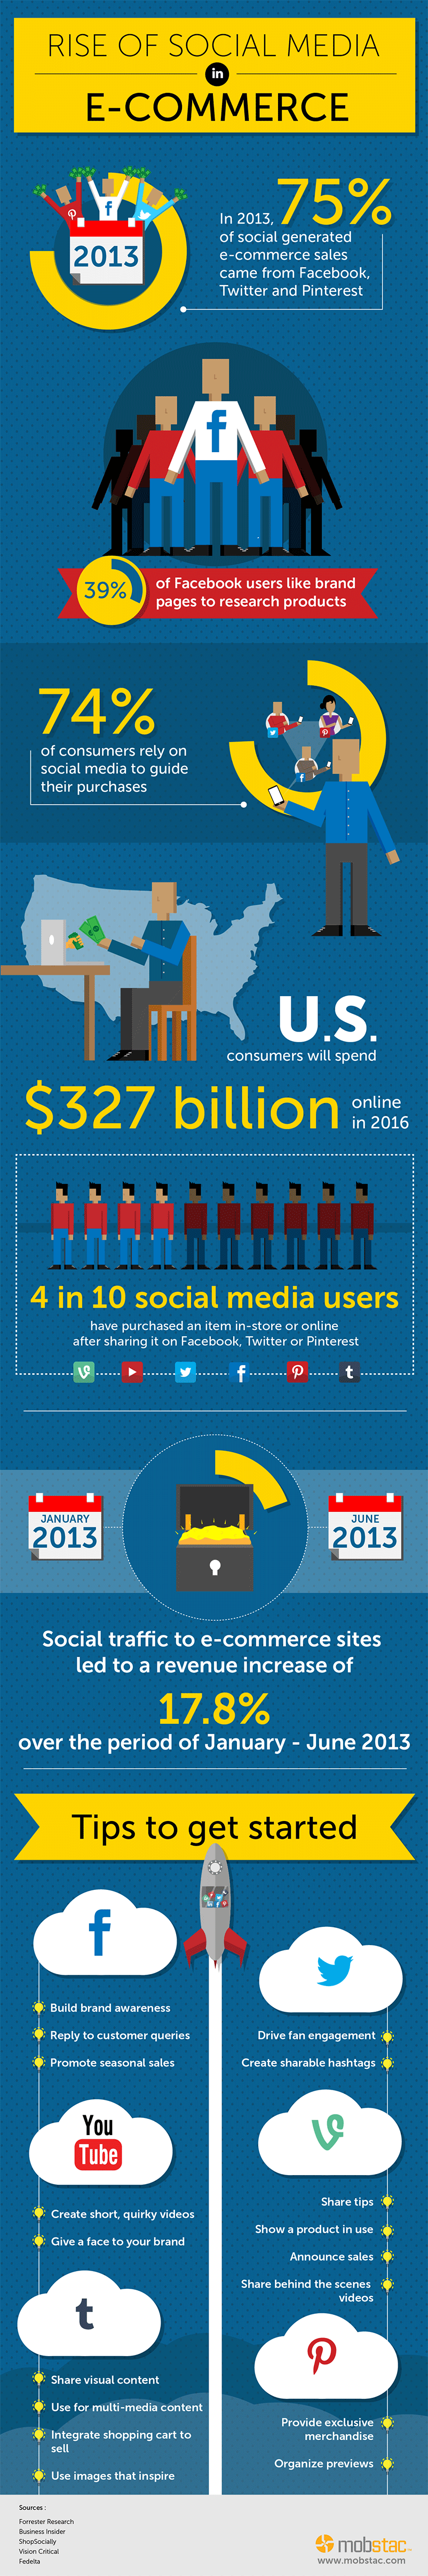 social ecommerce 2015 infographic